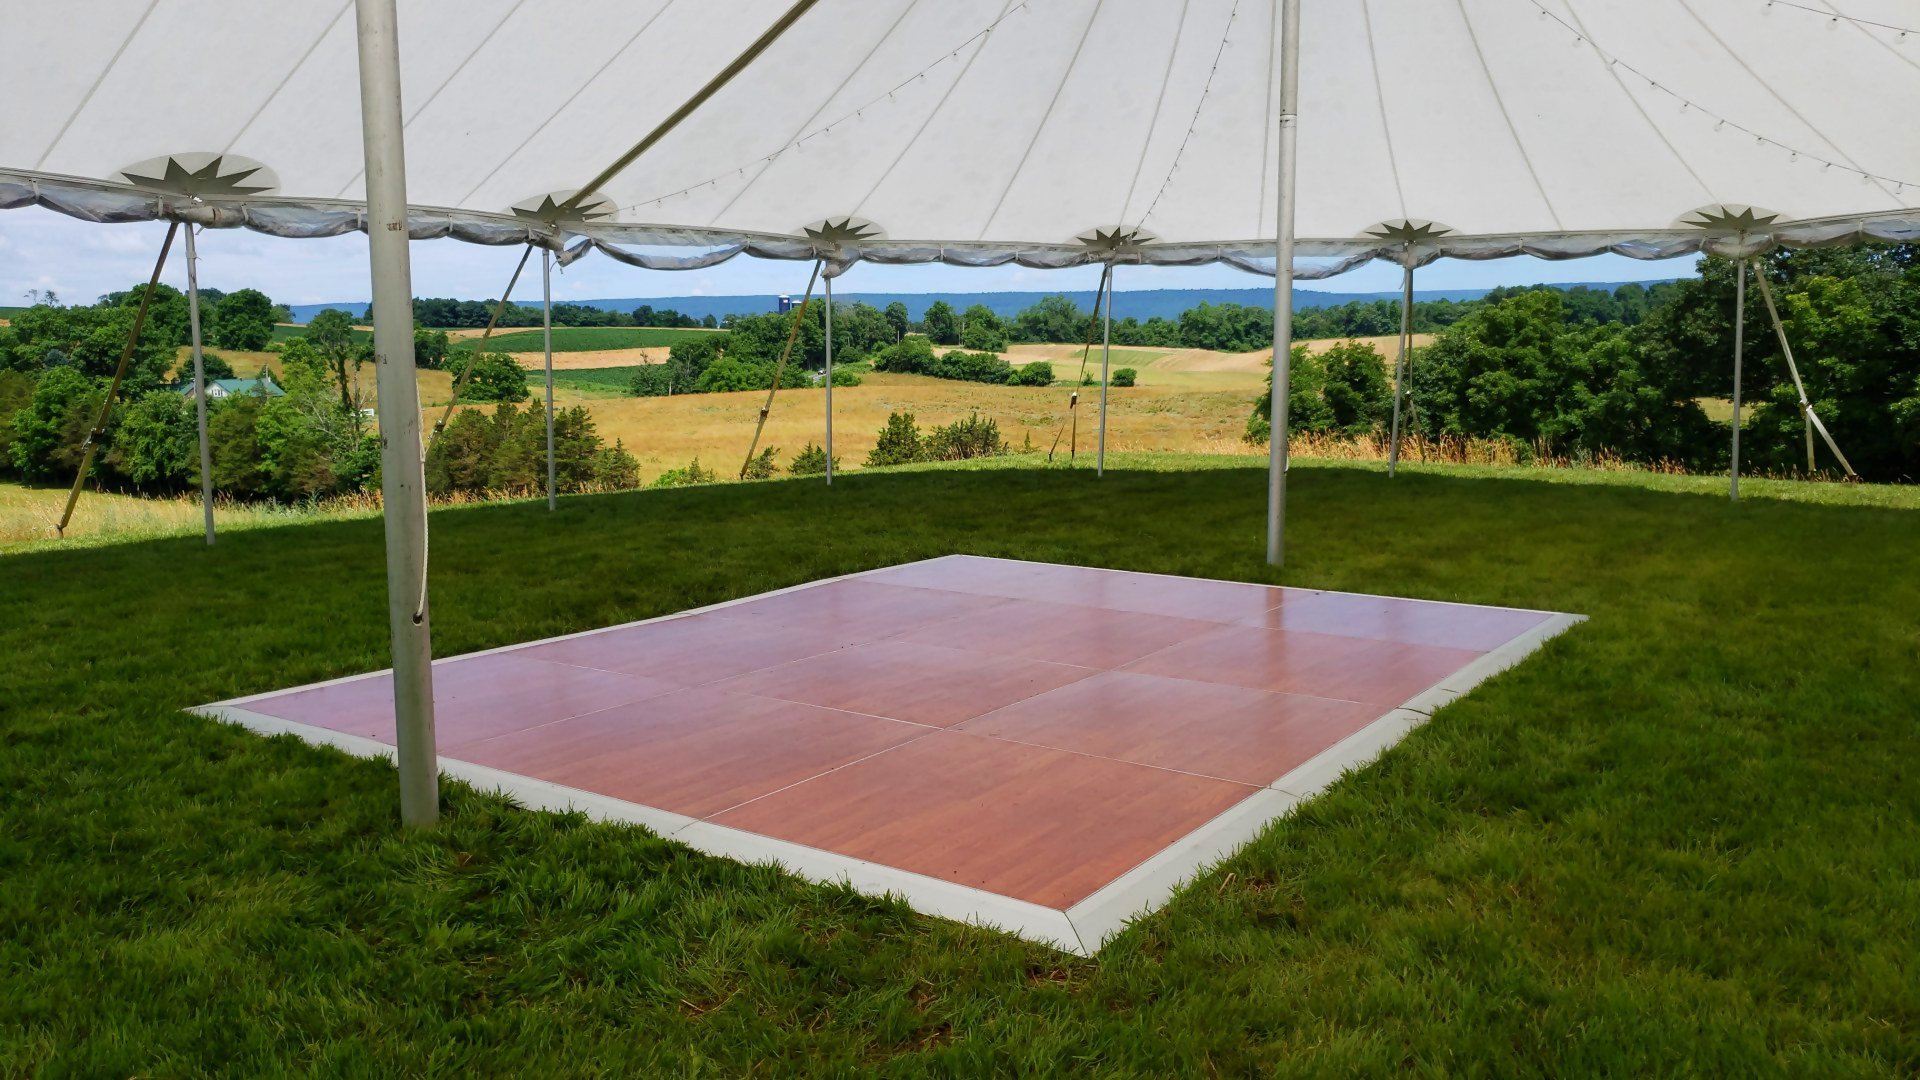 Dance floor under tent in Vineland, NJ